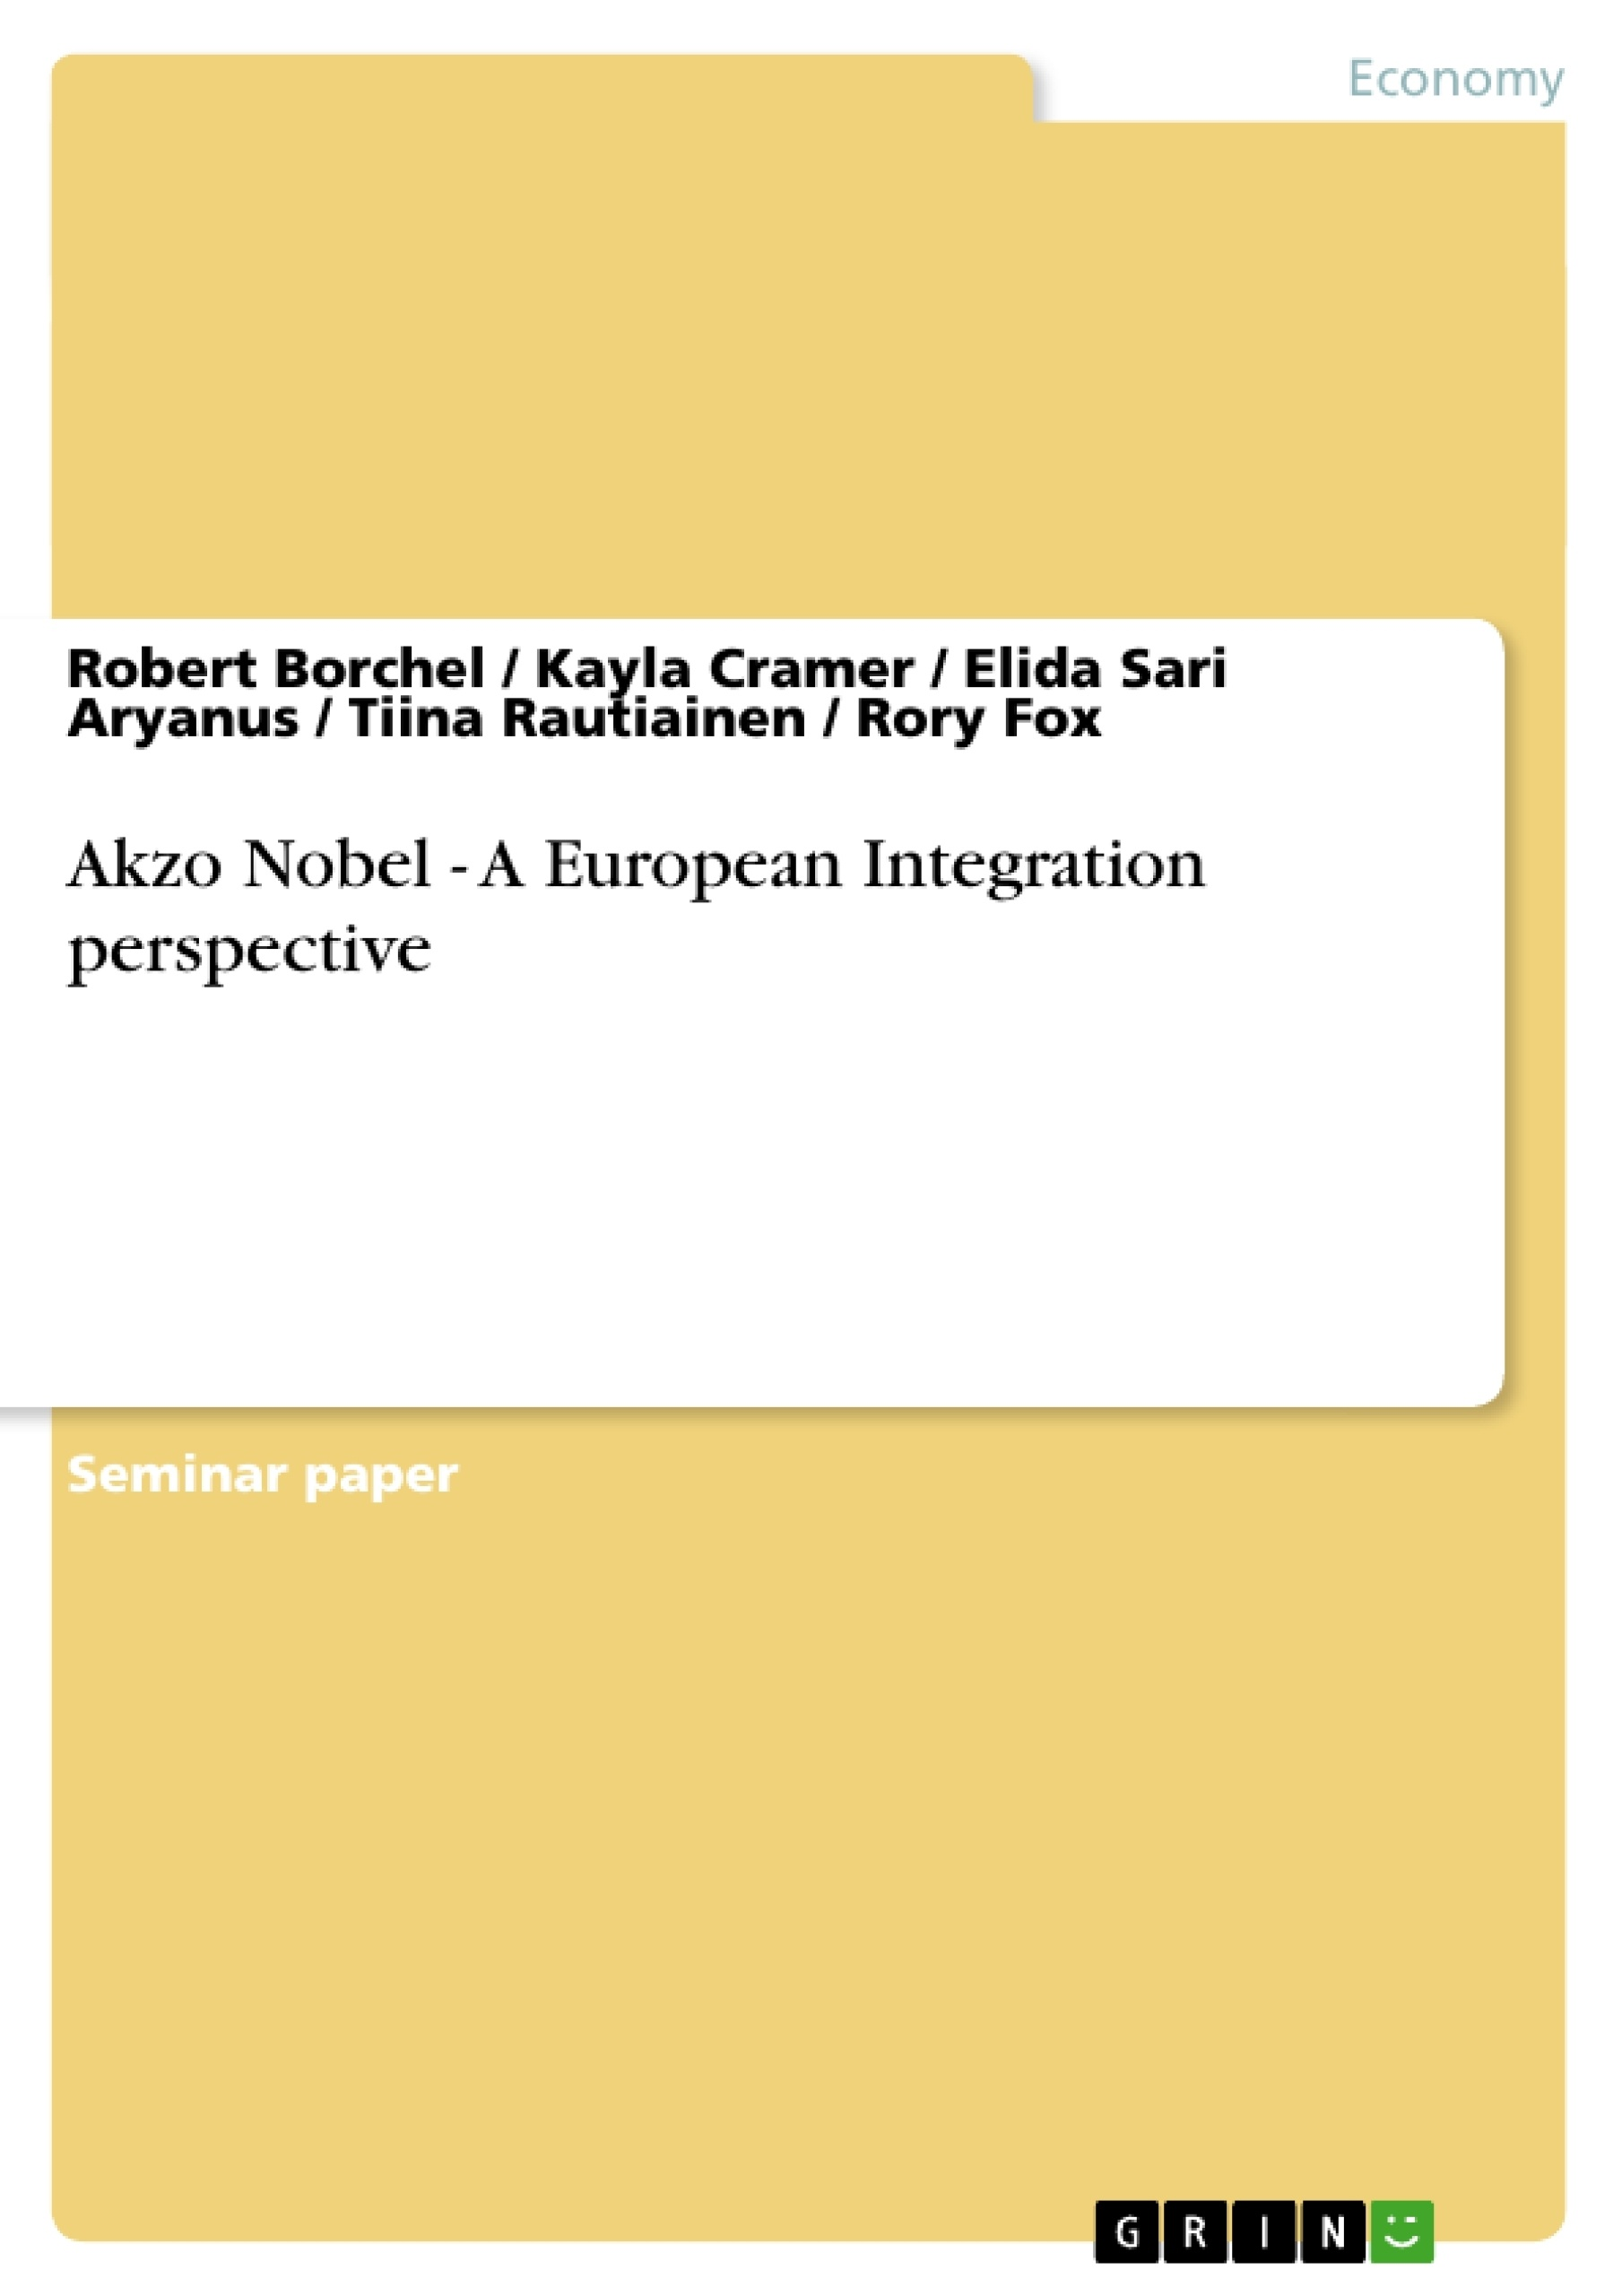 european integration essay European integration essay parliament 29/10/2018 leave a comment dream hotel essay job essay about home unemployment in malaysia, an essay with dialogue unforgettable experience essay about professional stress in life motivation to learning essay varkala essay about introvert and extrovert loversessay topics websites grade 6 icse english.